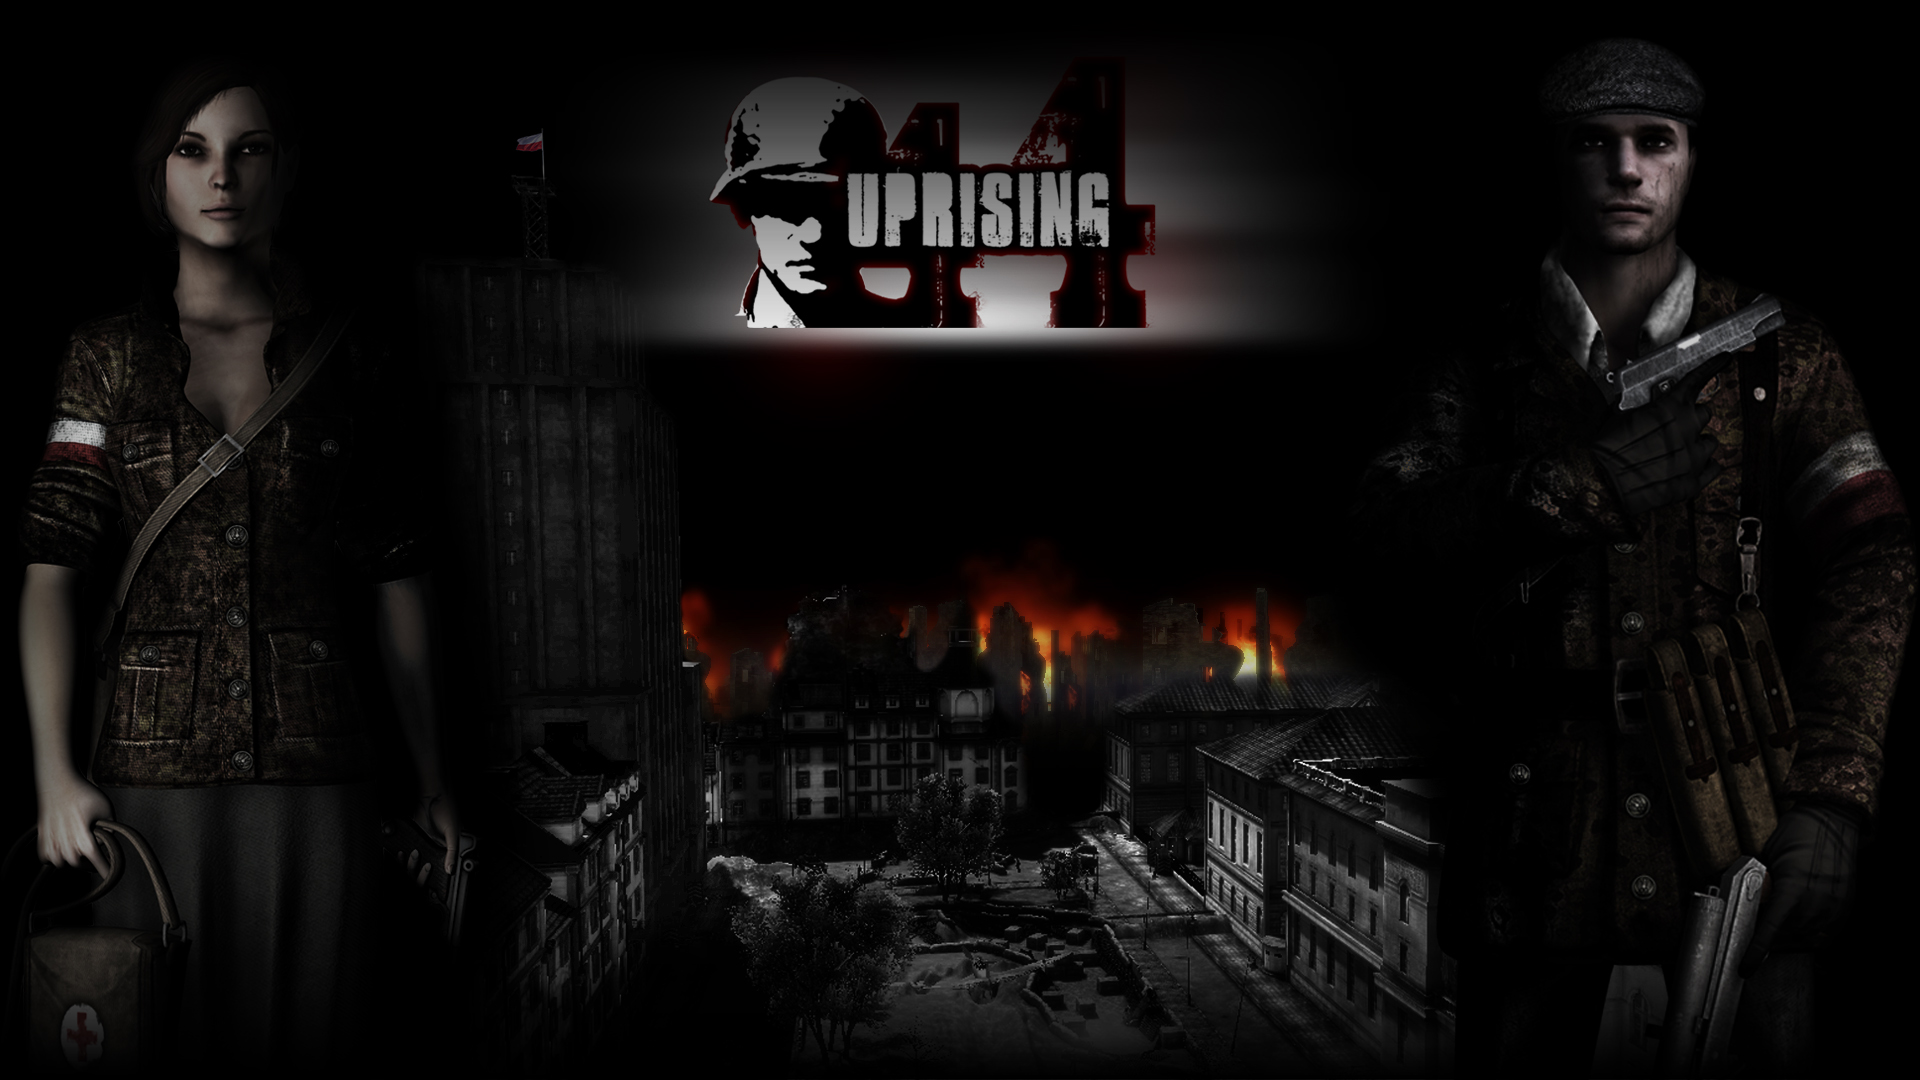 Uprising44: The Silent Shadows, recrea la sublevación de Varsovia [Vídeo]